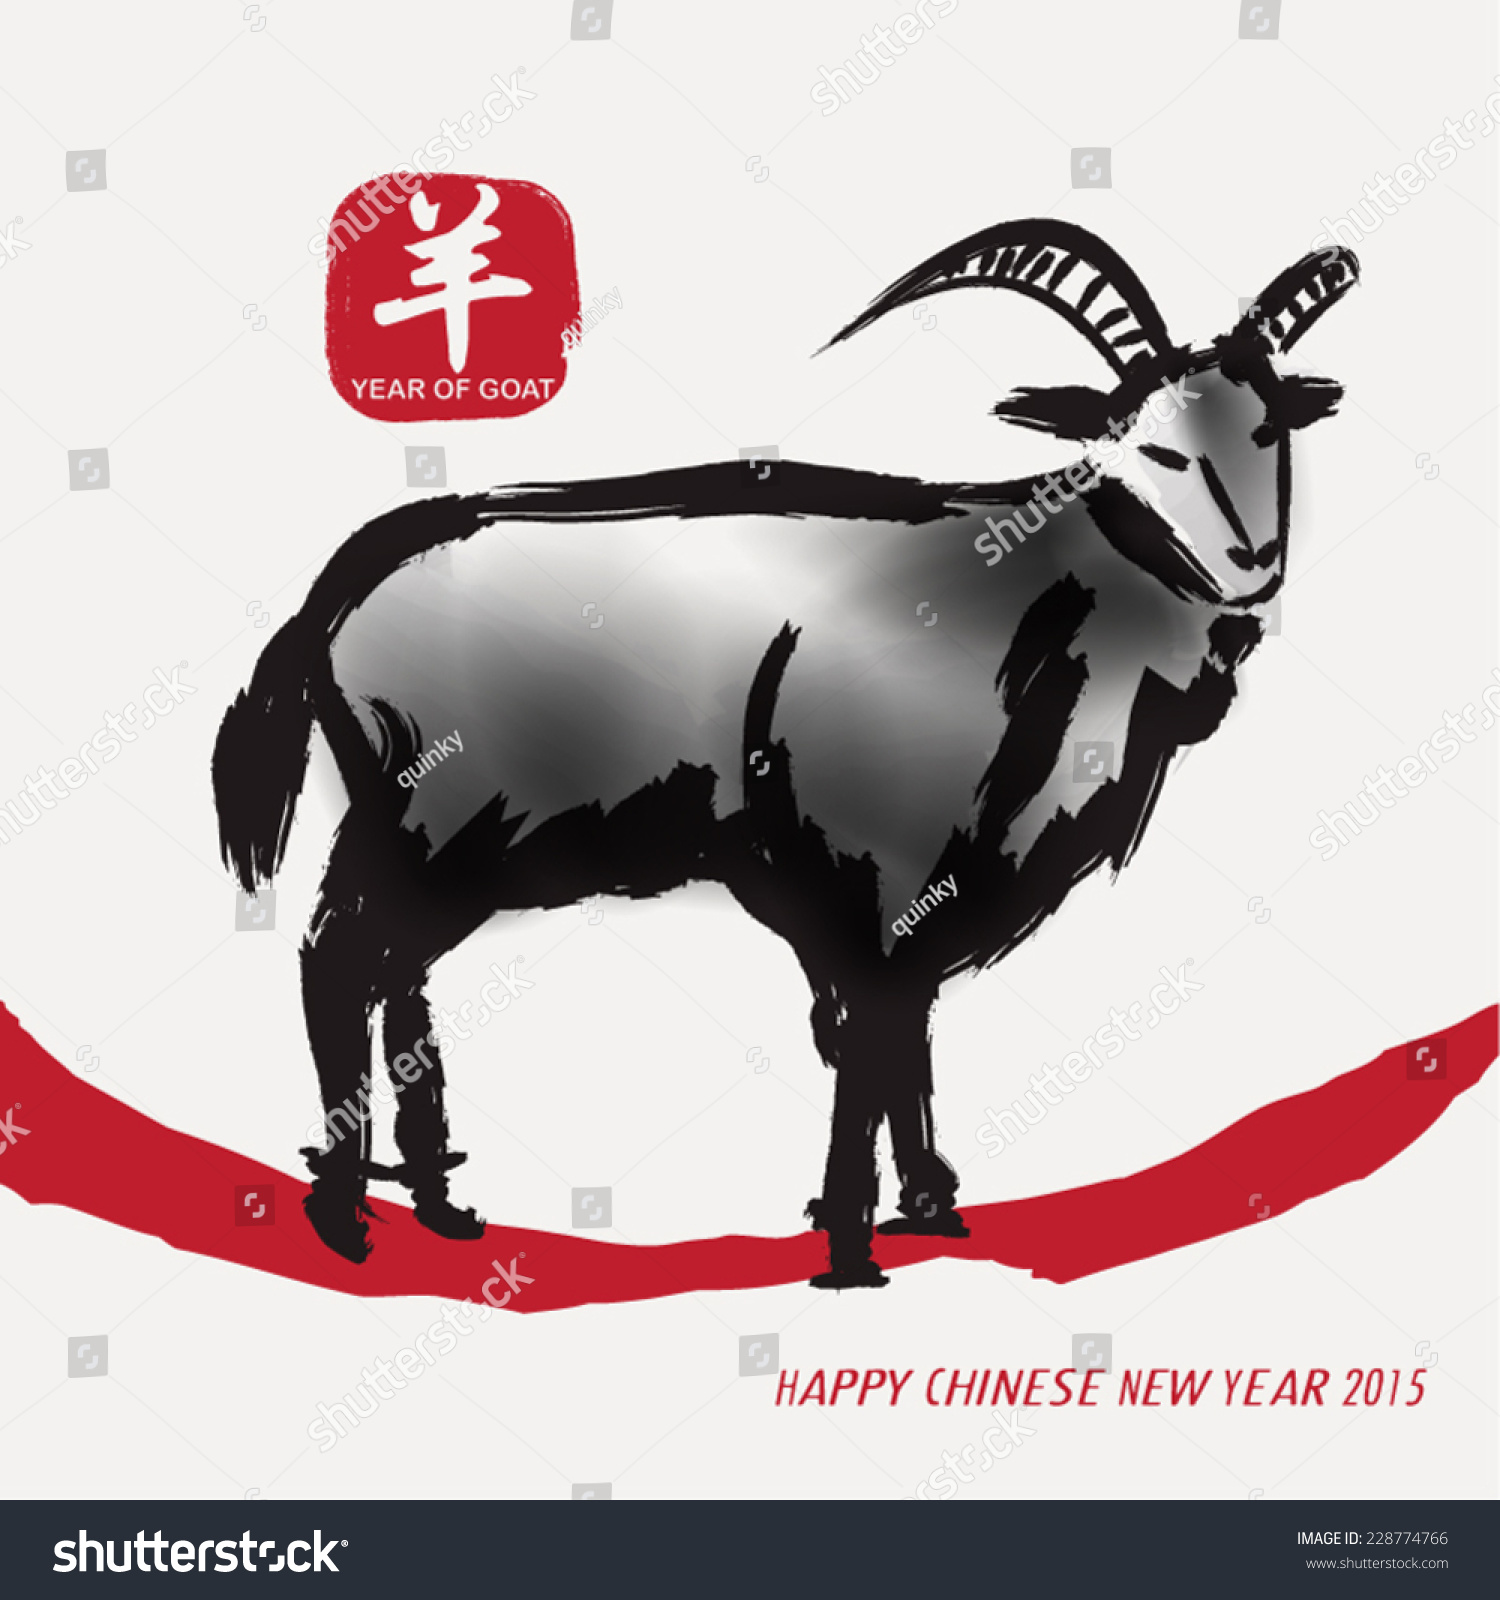 oriental chinese new year goat 2015 vector design chinese translation year of goat - Chinese New Year 2015 Animal